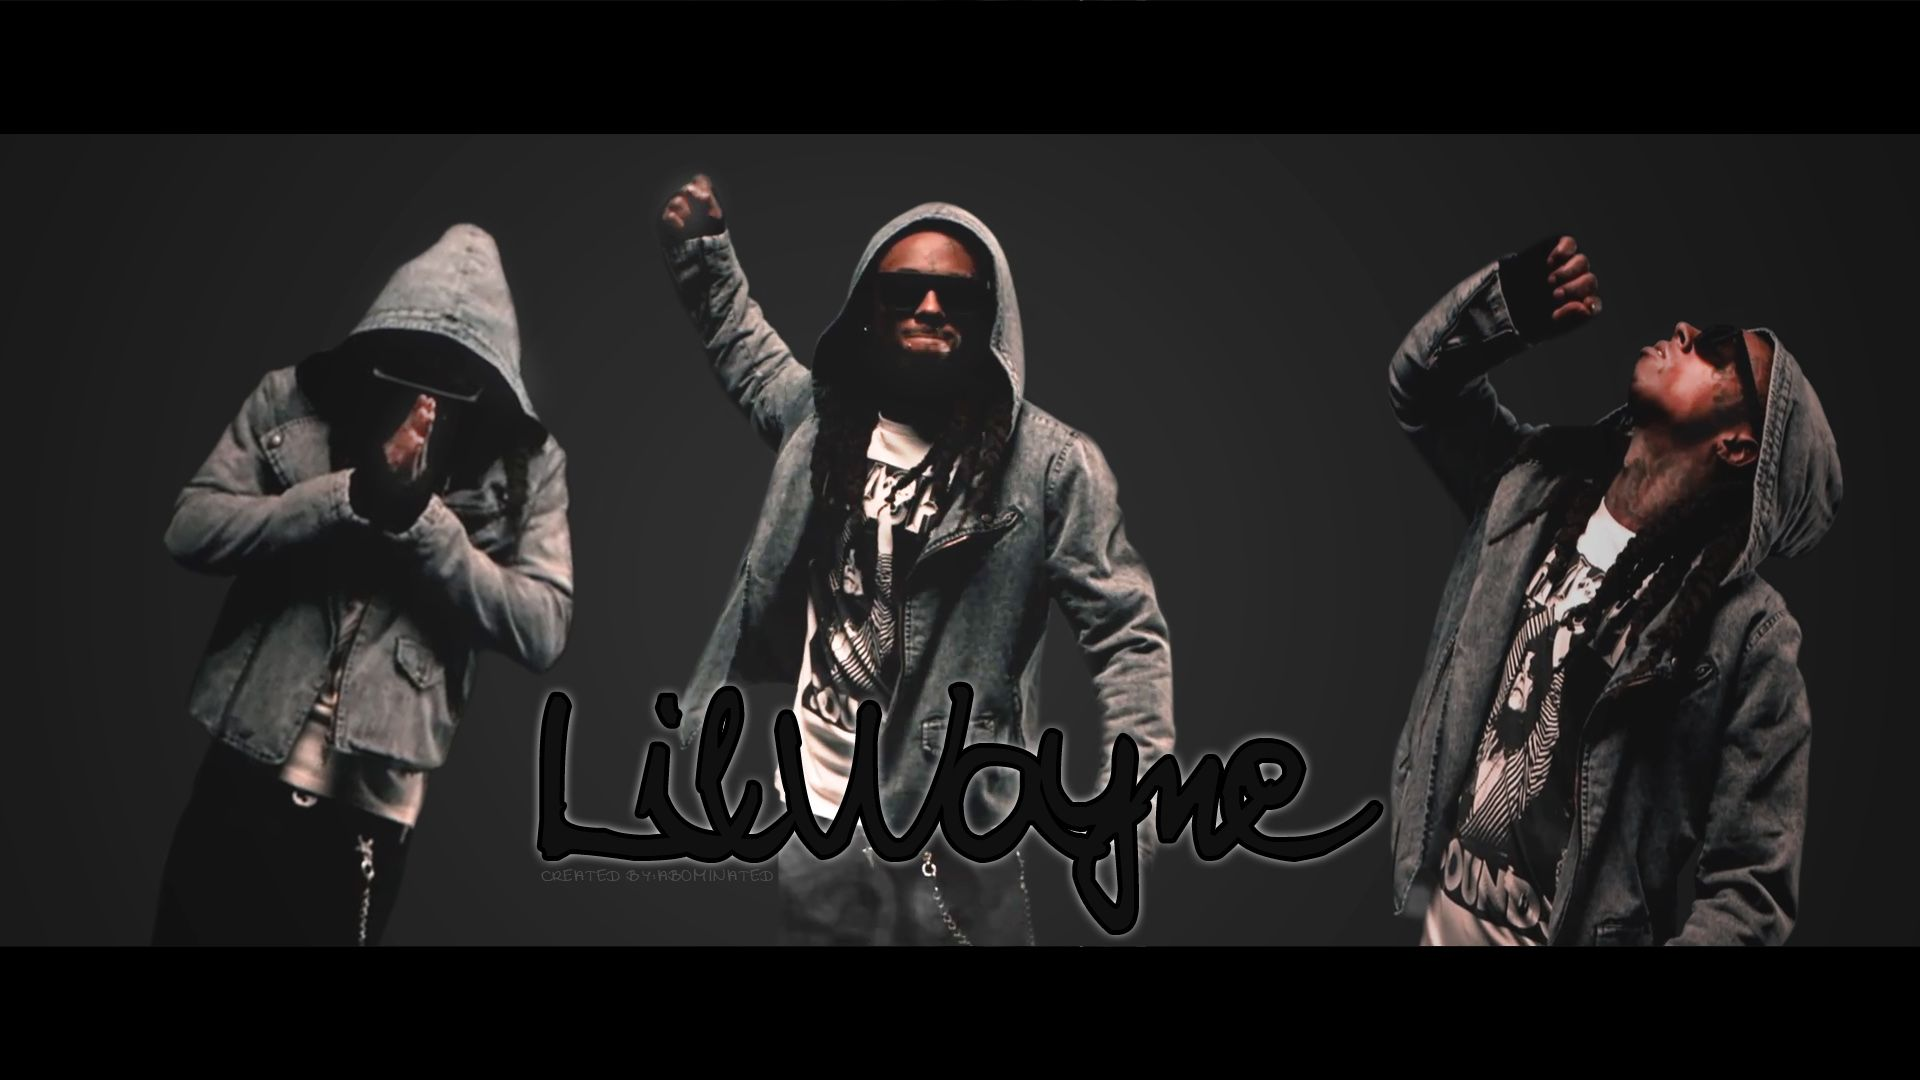 1545616 Lil Wayne wallpaper HD wallpapers backgrounds images 1920x1080